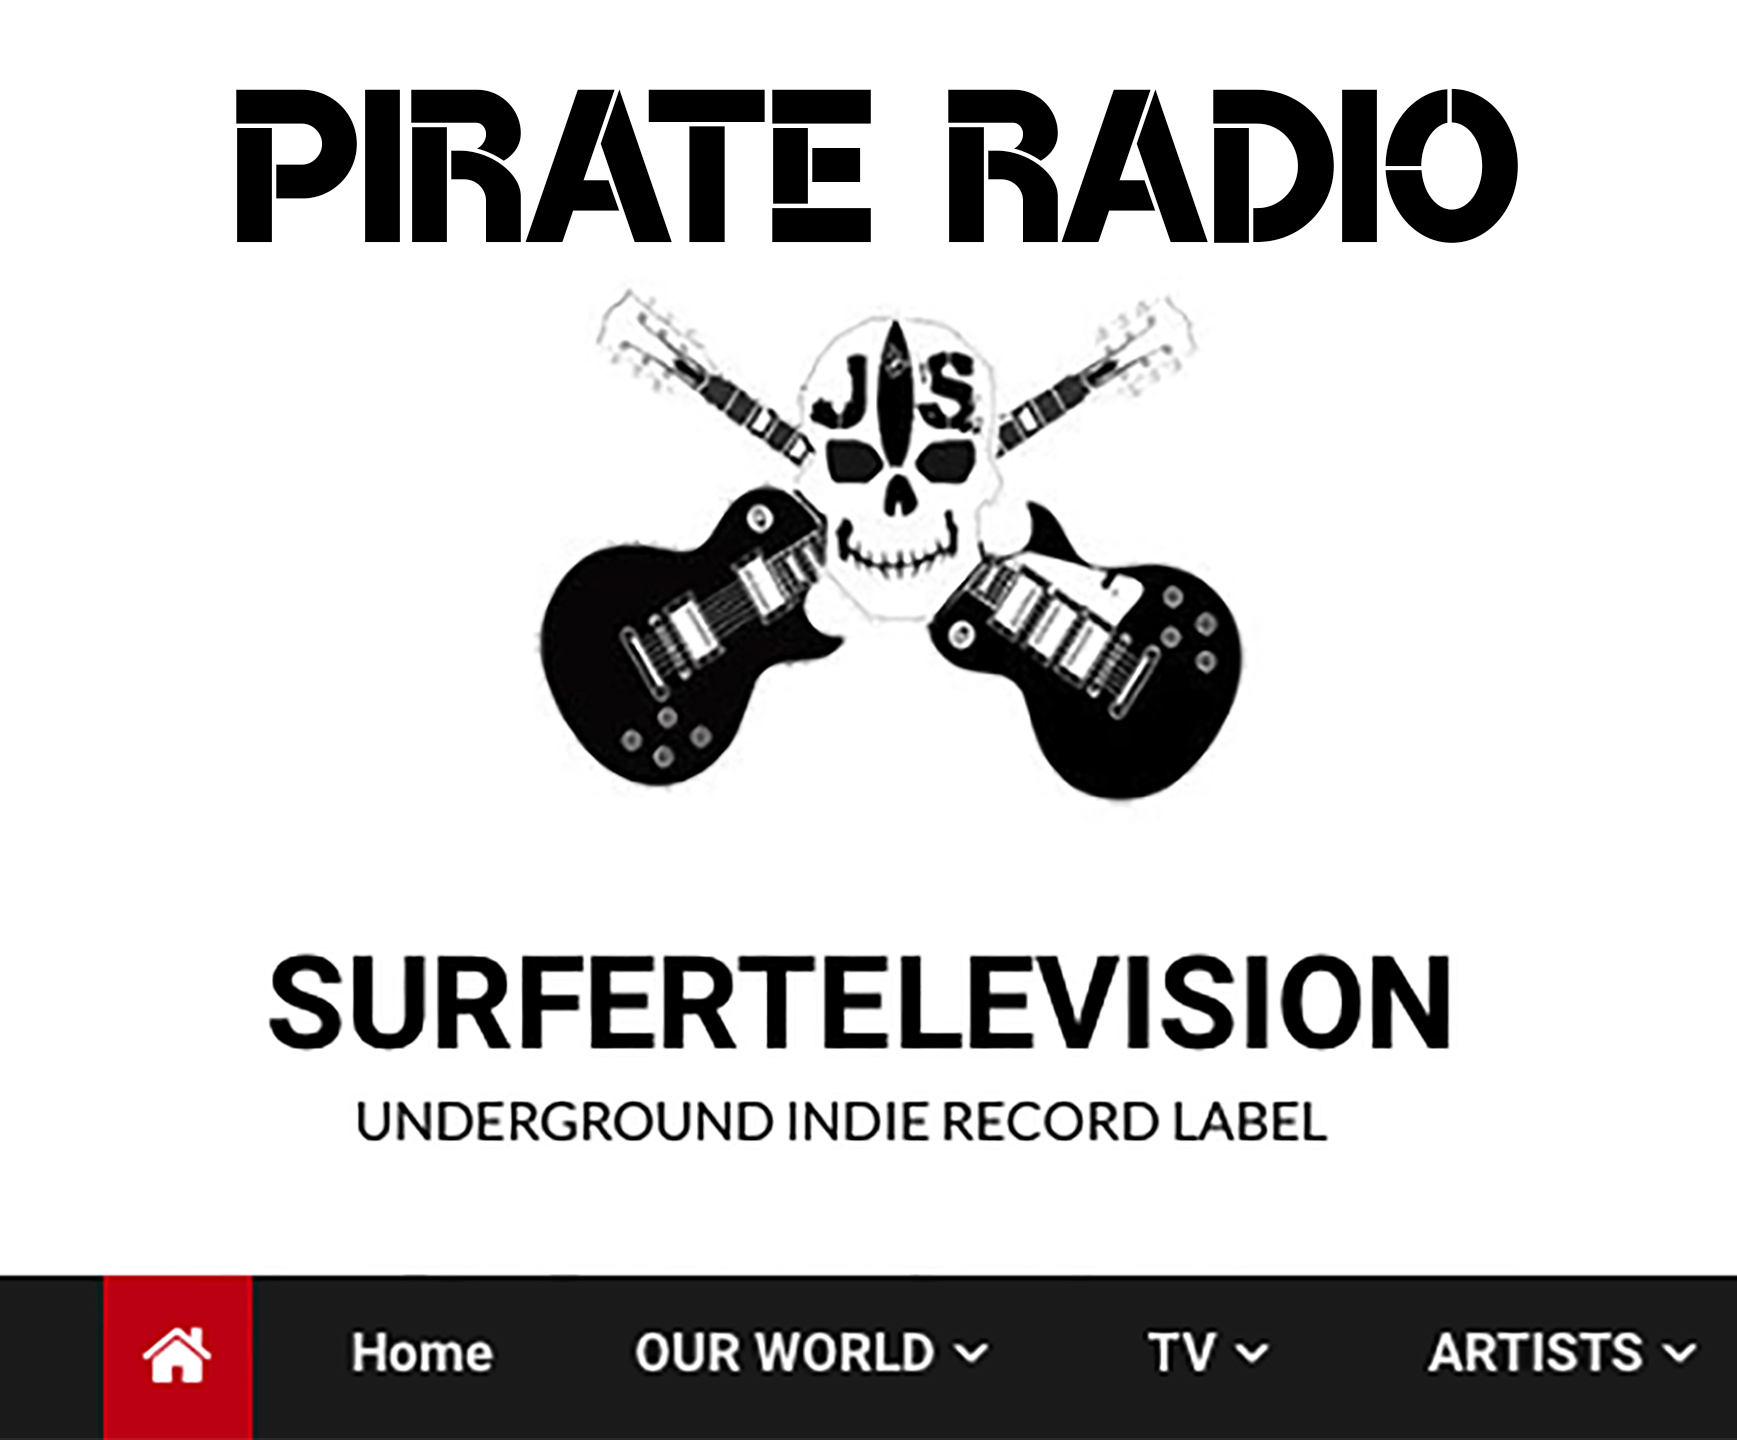 SURFERTELEVISION PIRATE RADIO SPOTIFY PLAYLIST